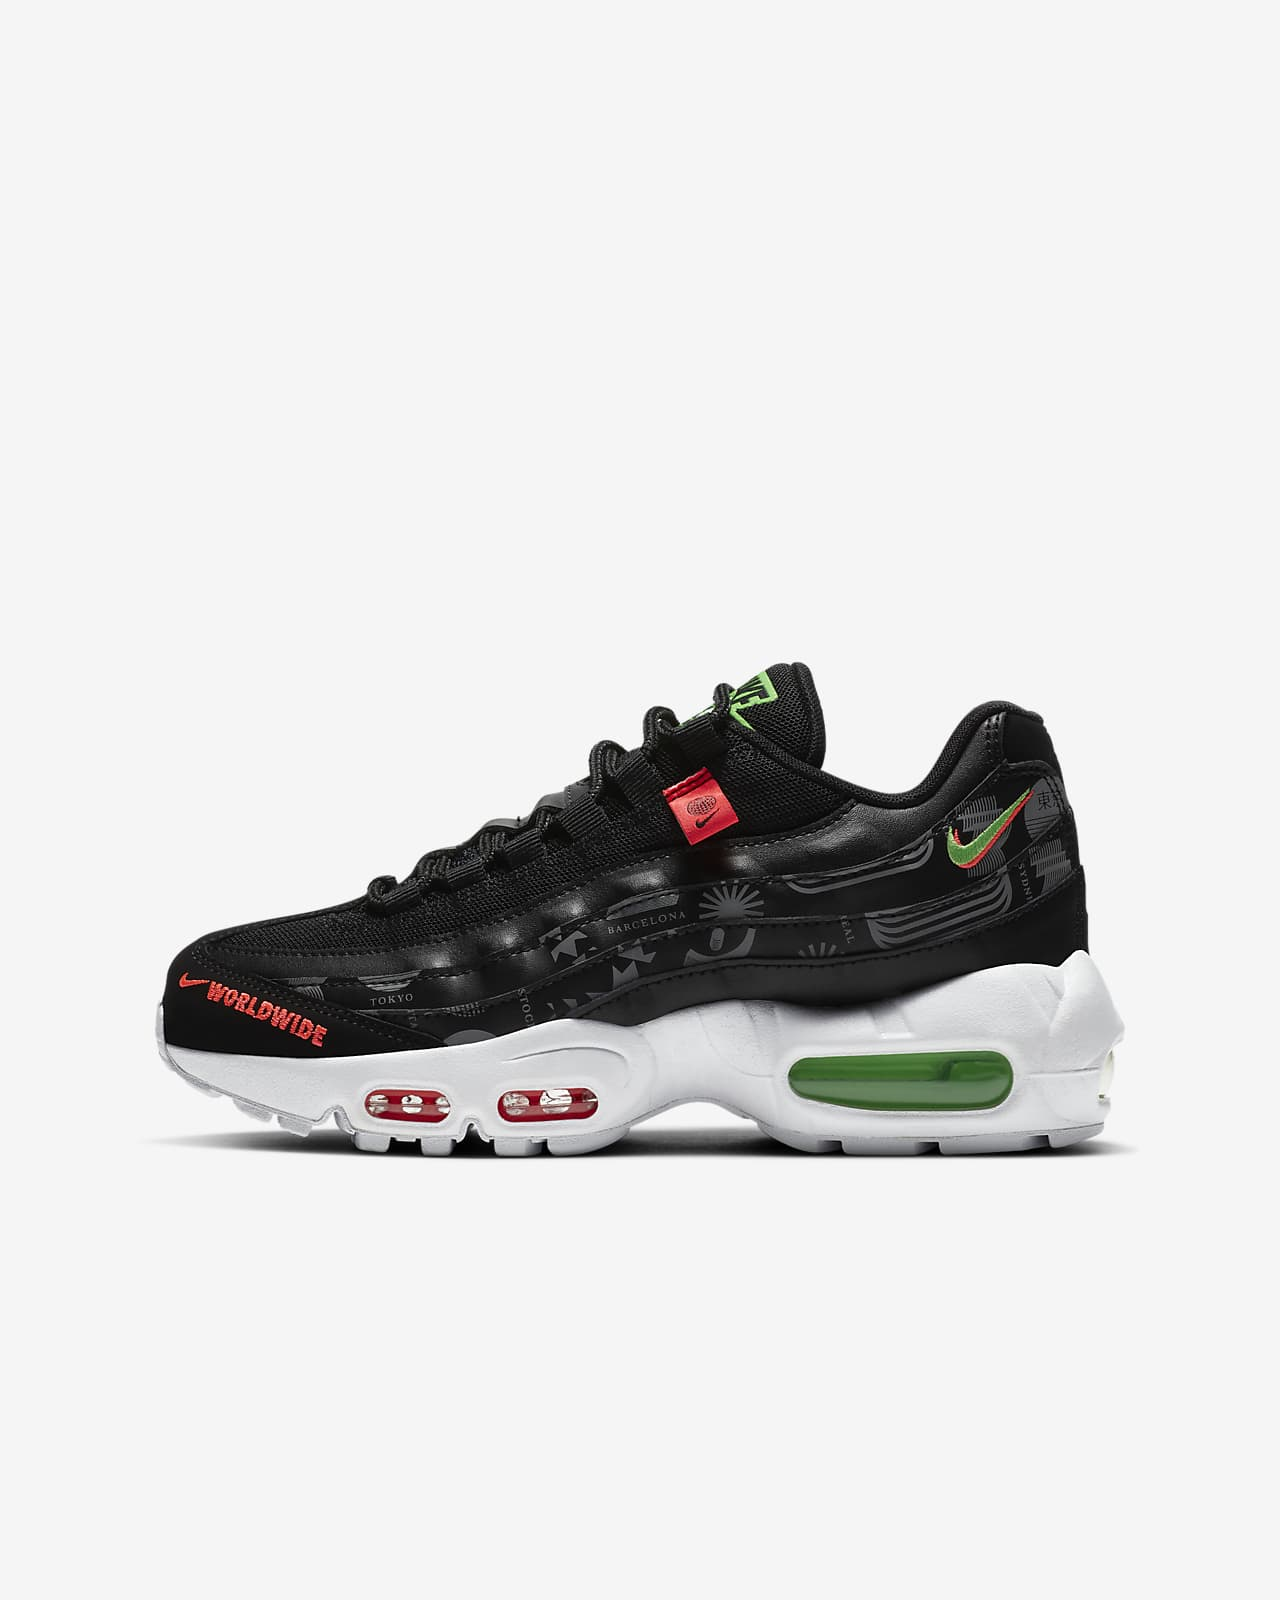 Nike Air Max 95 Recraft SE GS 大童运动童鞋